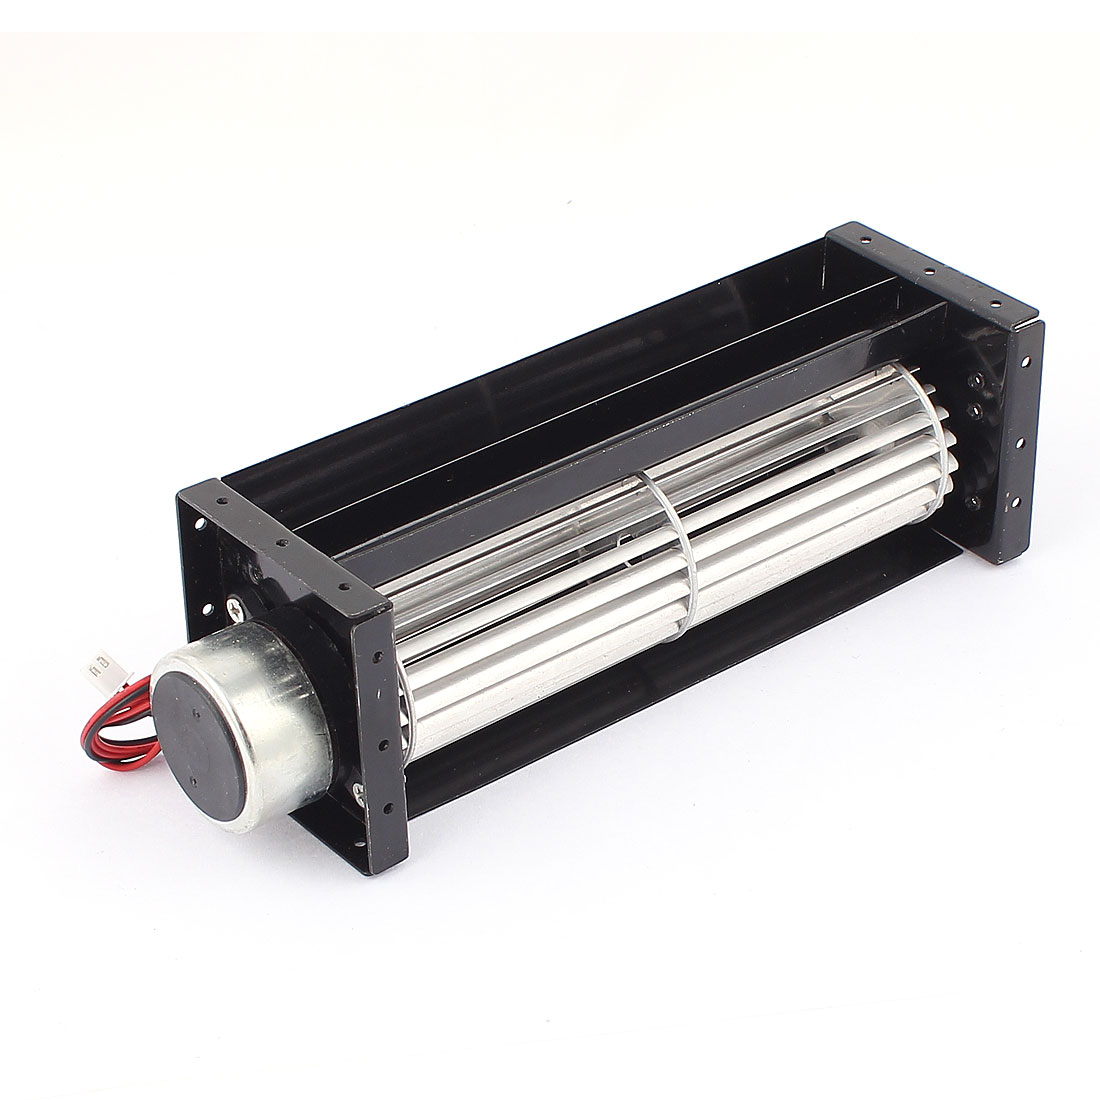 DC 12V 0.25A Cross Flow Cooling Fan Heat Exchanger Amplifier Cool Turbo 40x150mm